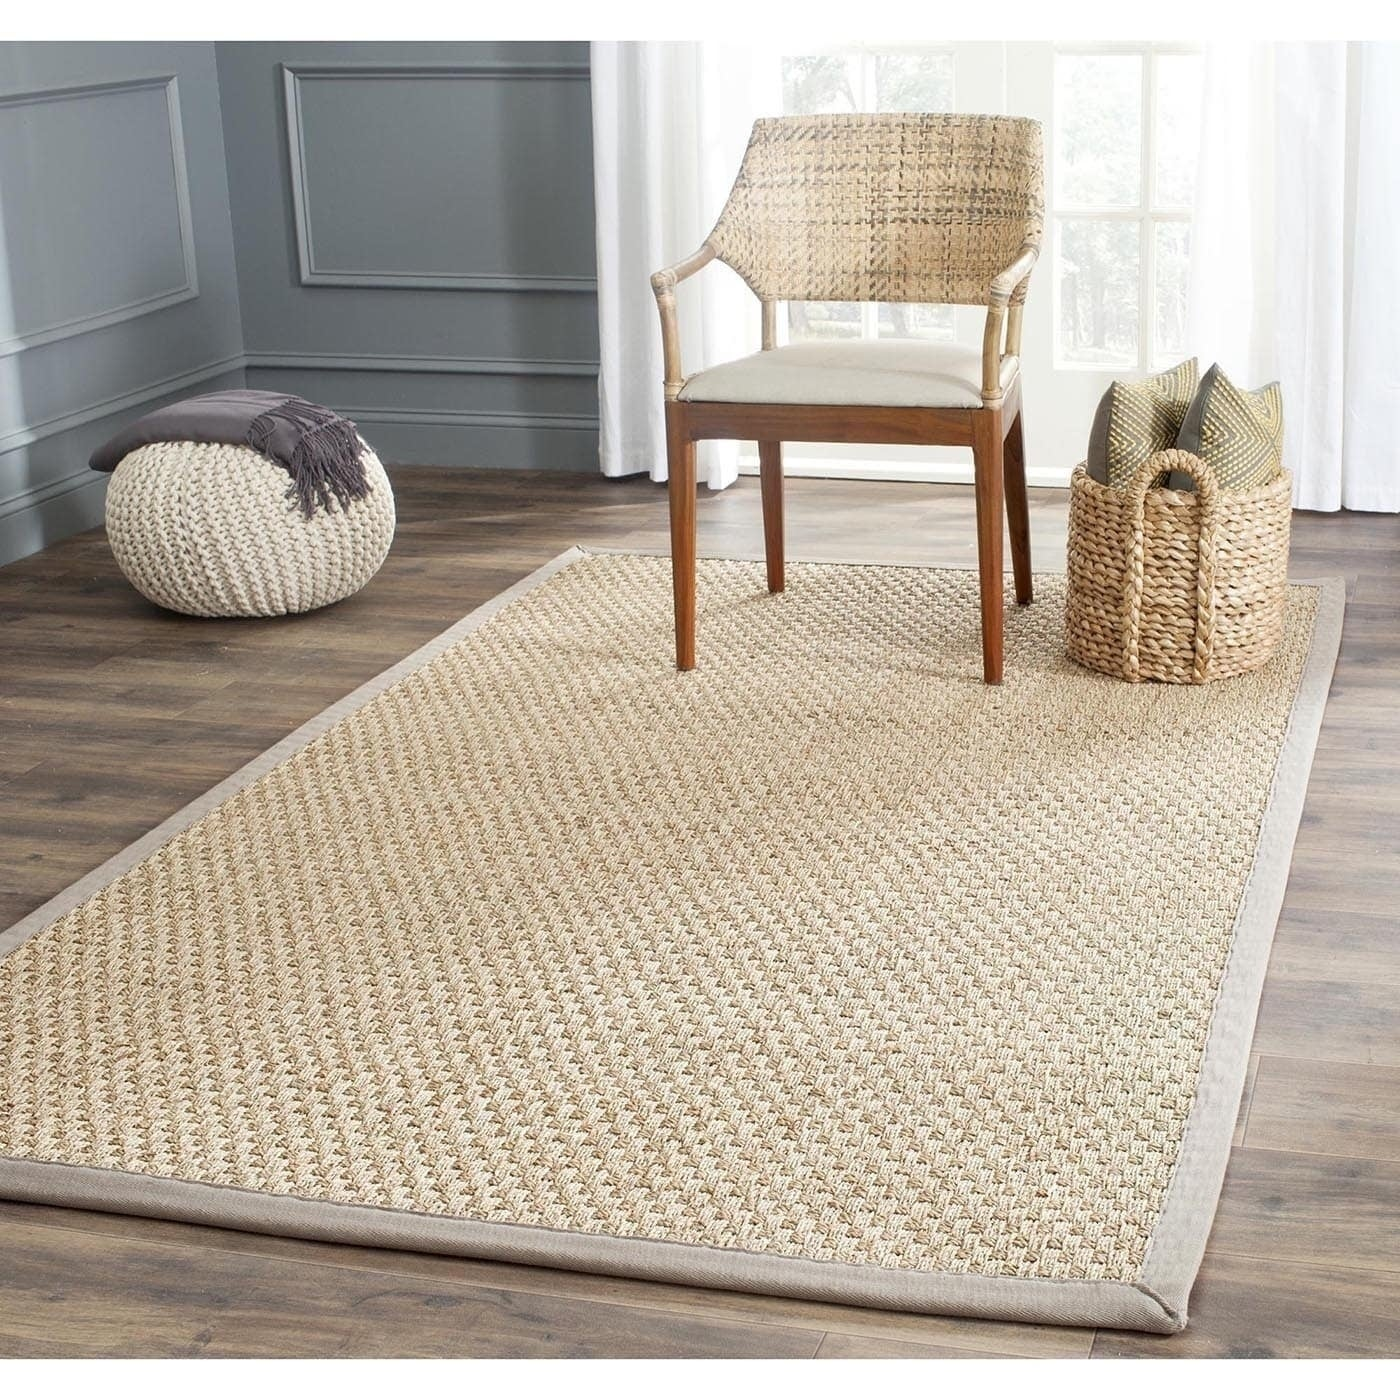 Safavieh Casual Natural Fiber And Grey Border Seagr Rug Free Shipping Today 21084965